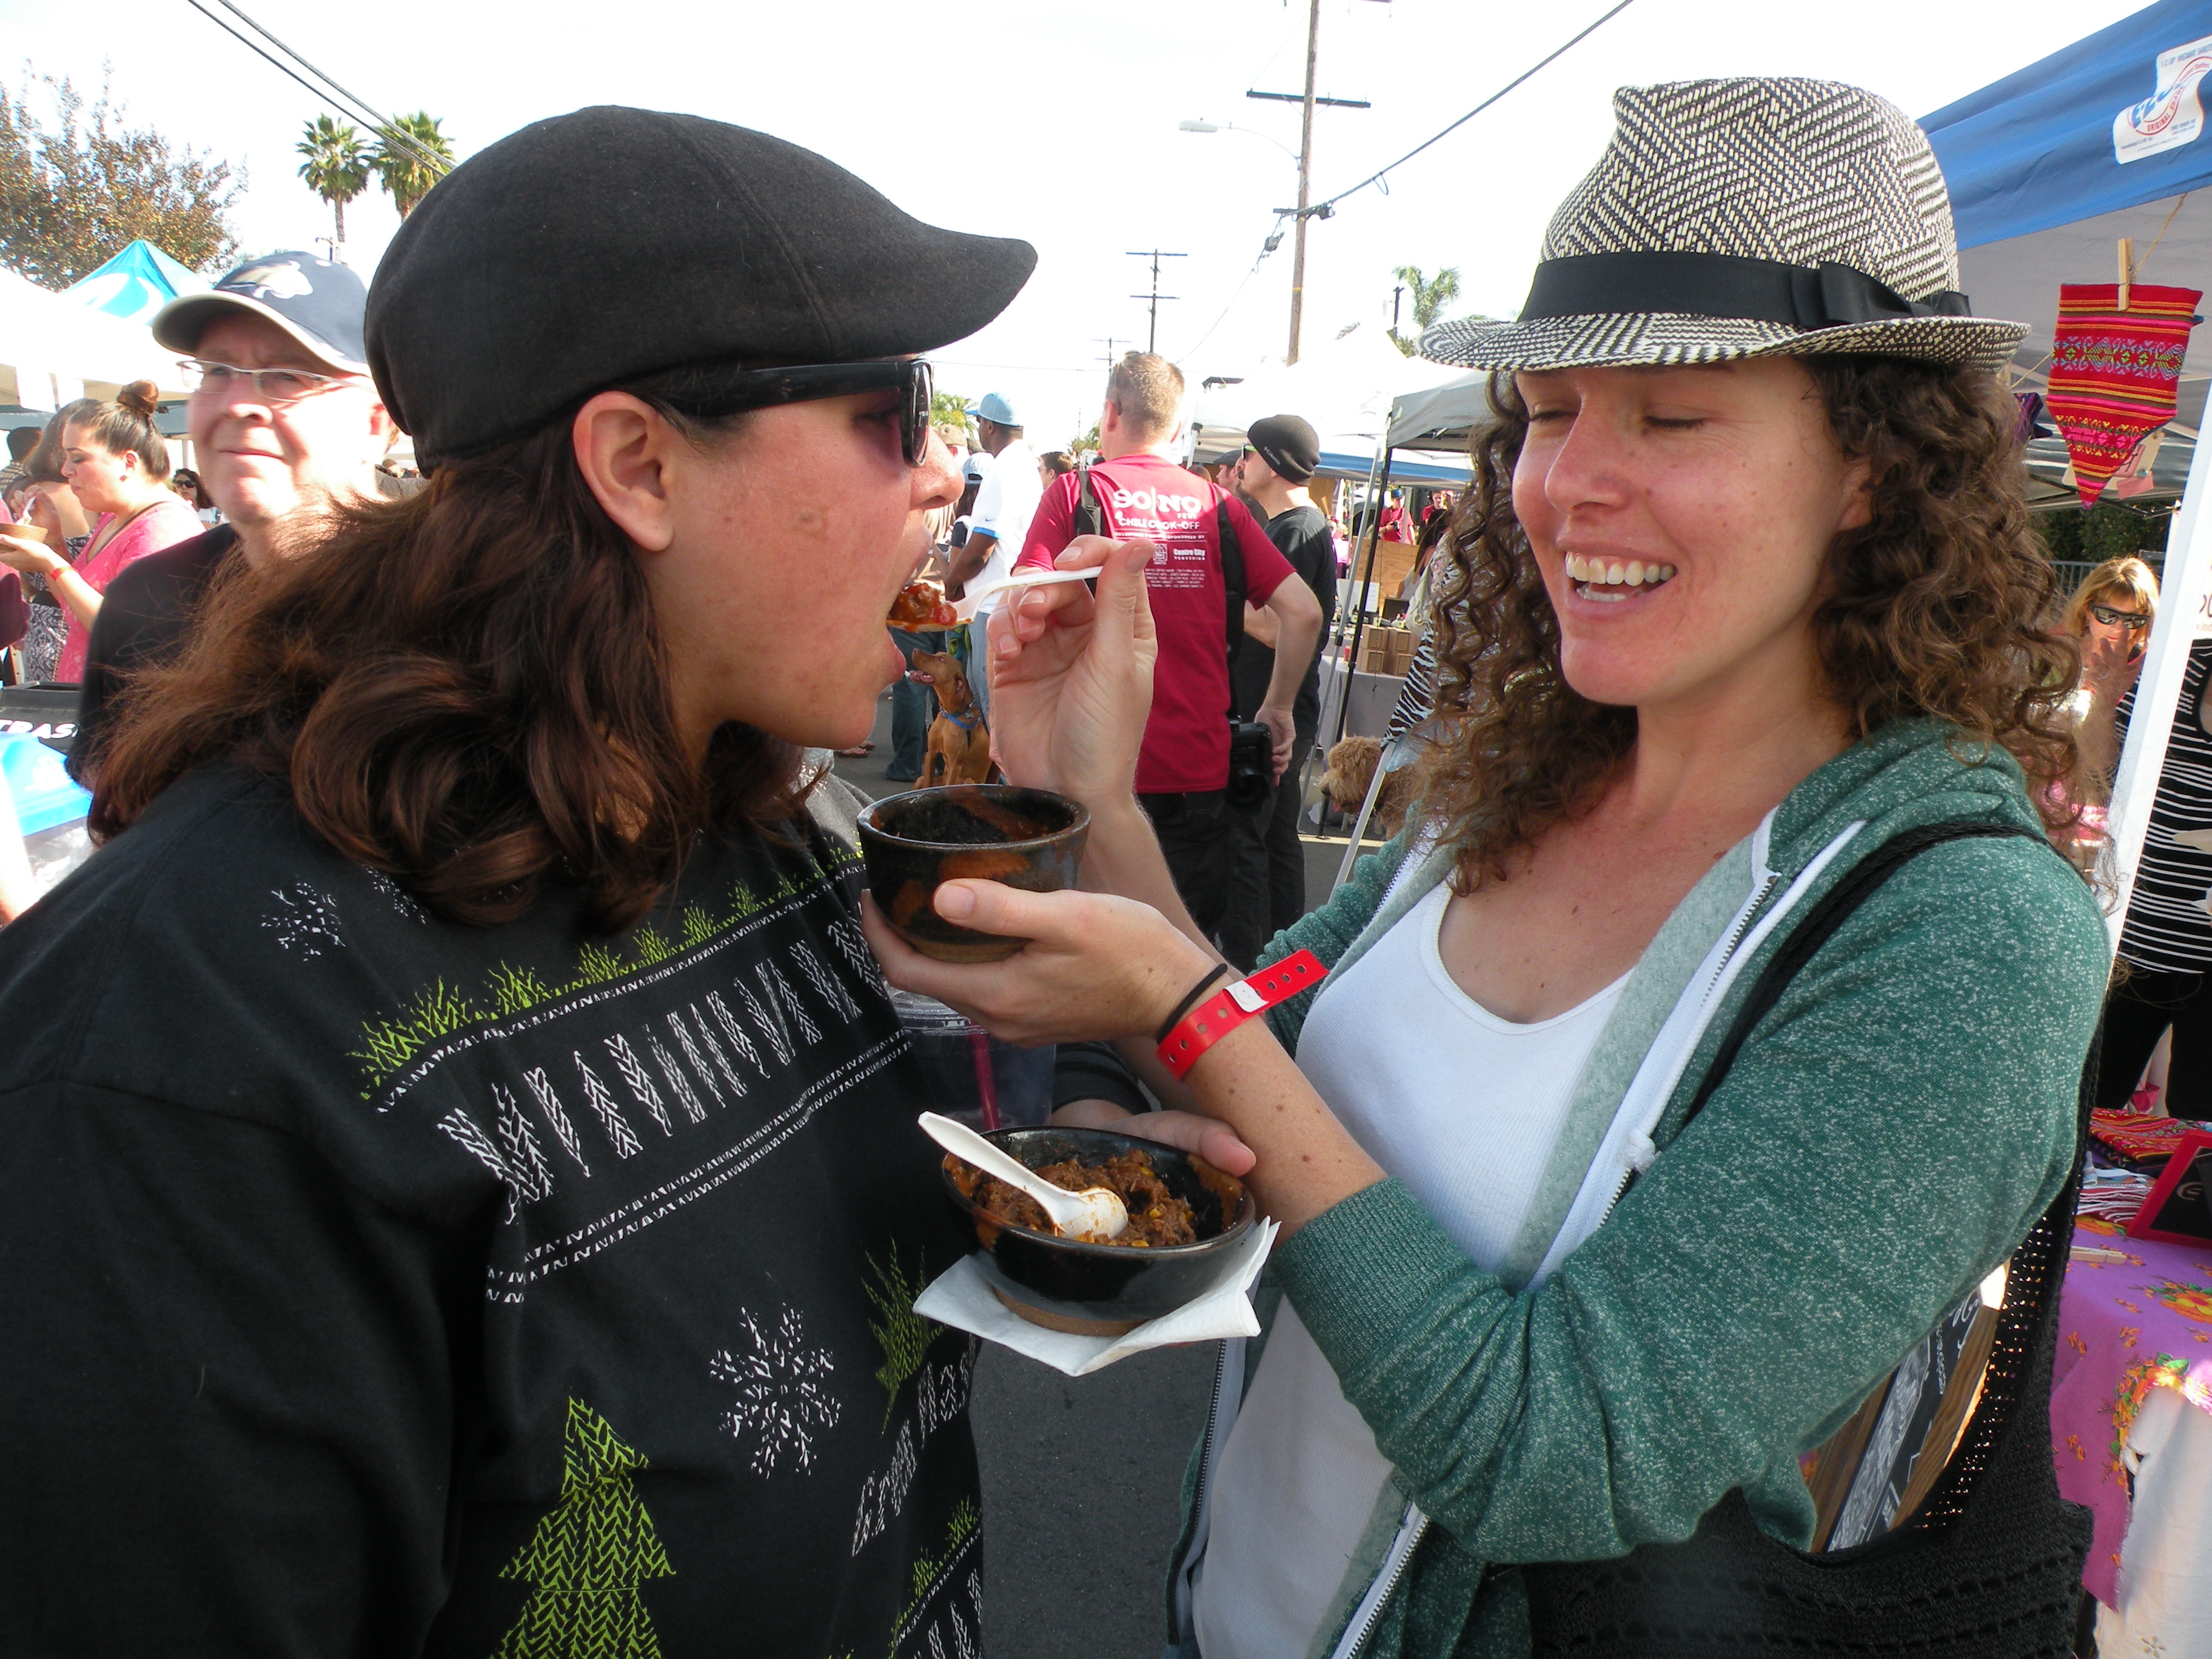 A couple of chili tasters at the festival.